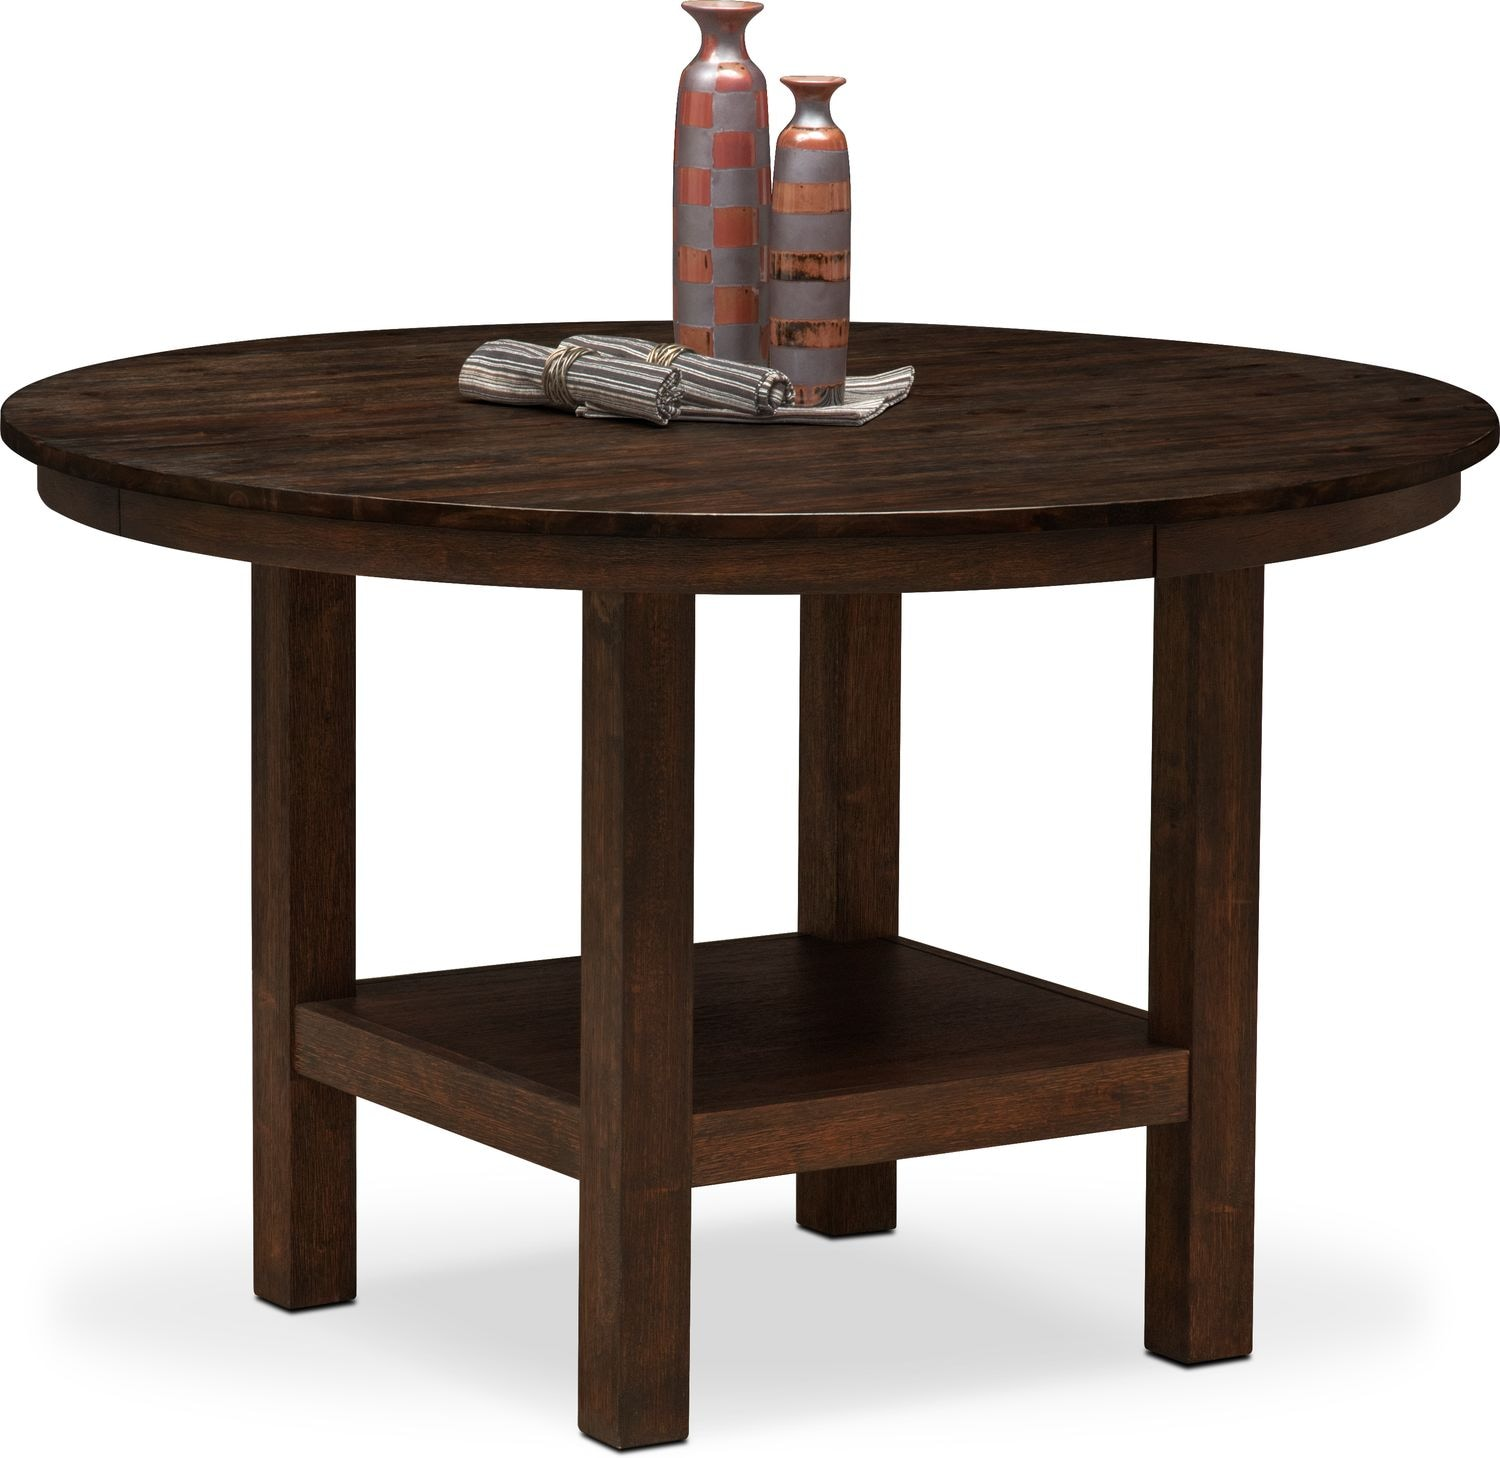 Tribeca Round Dining Table   Tobacco